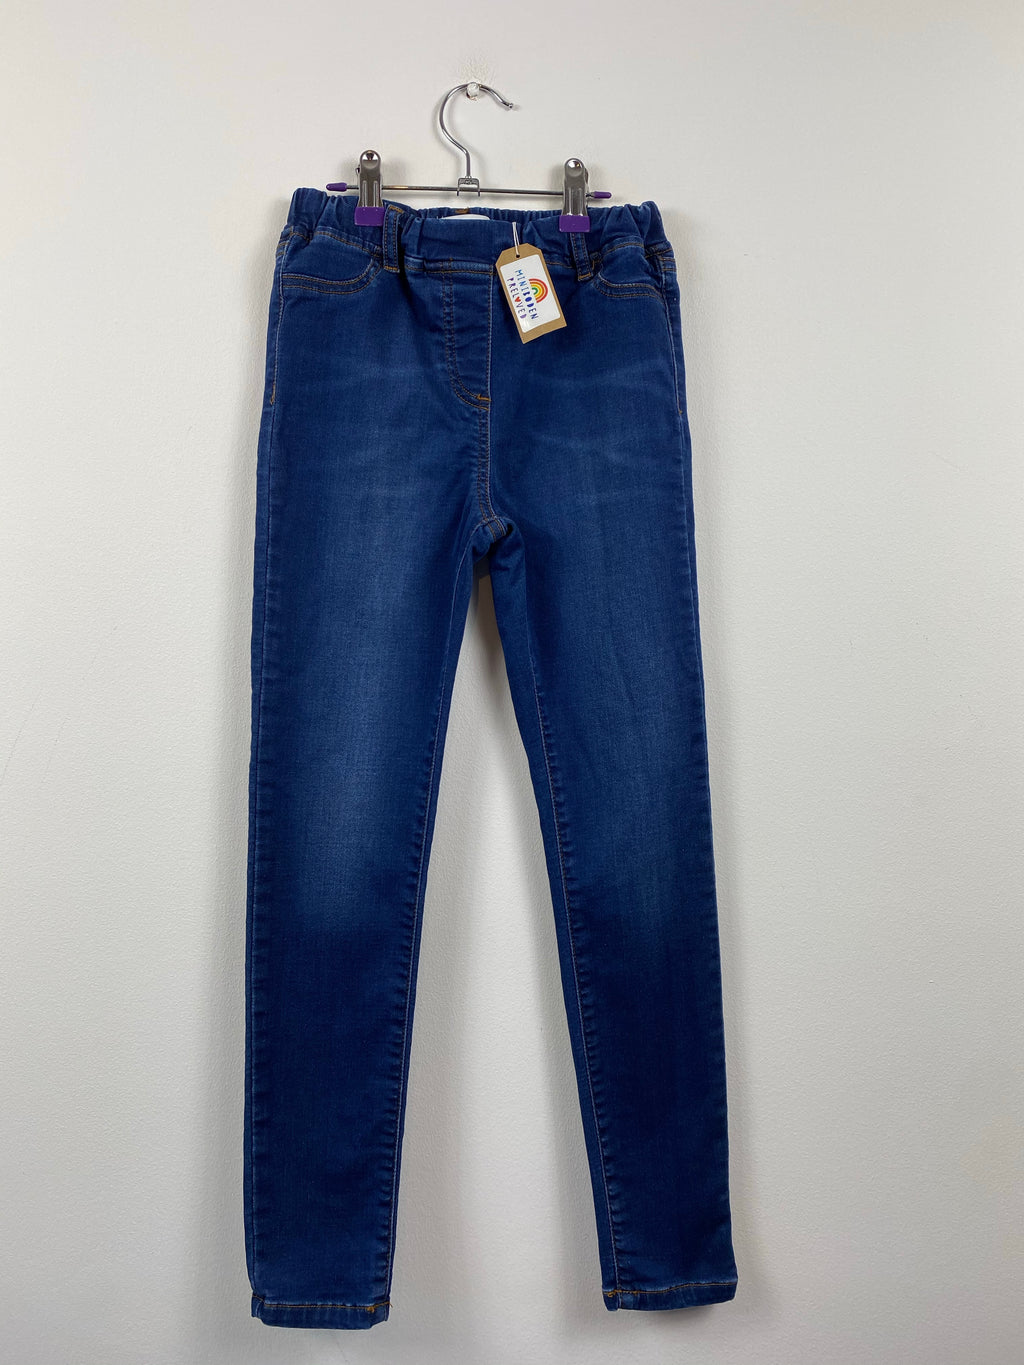 Blue Slim Fit Jeans (10 Years)